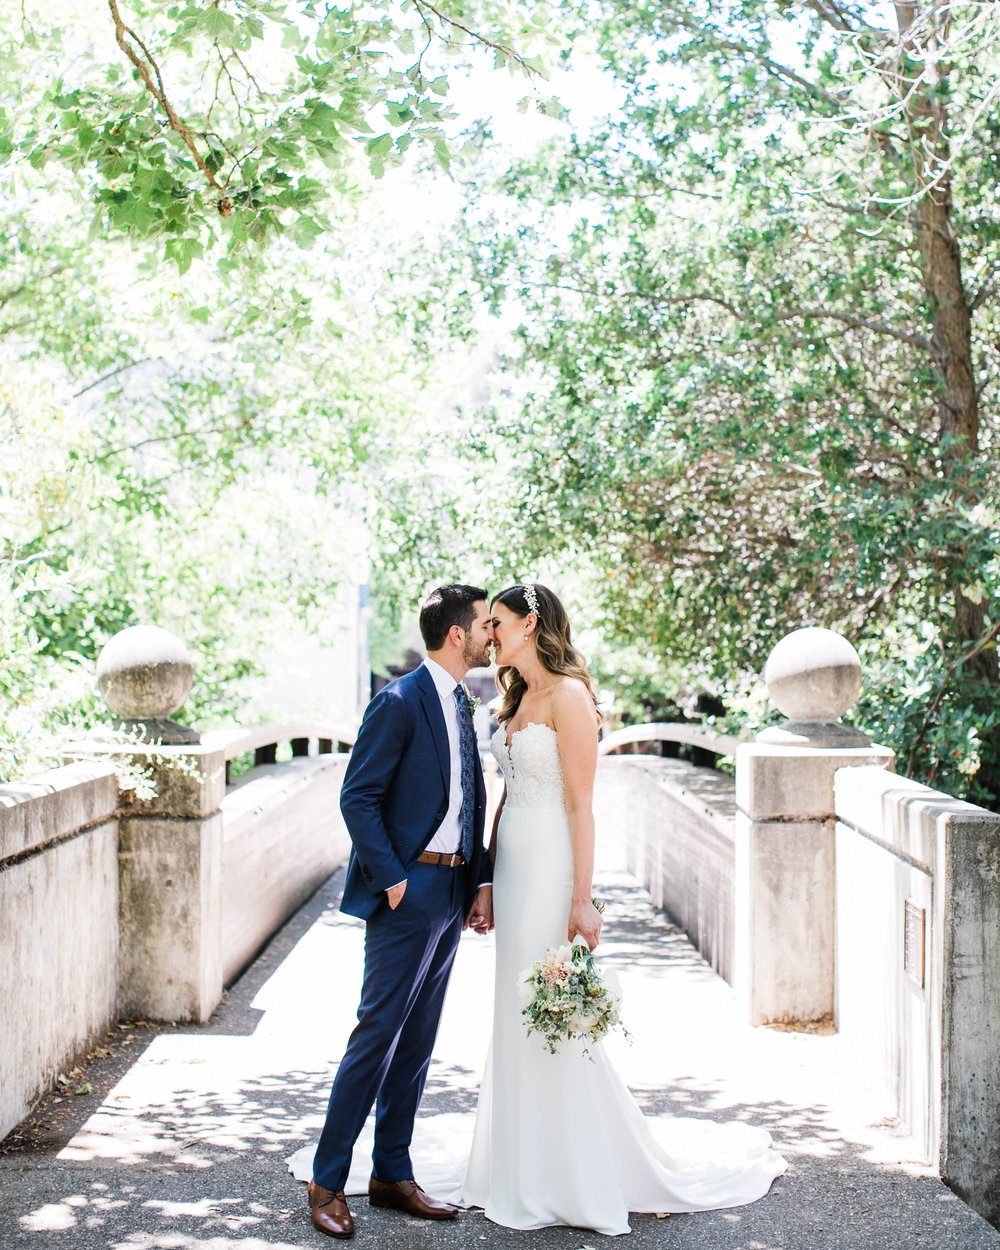 Greg + Lauryn | San Francisco Theological Seminary